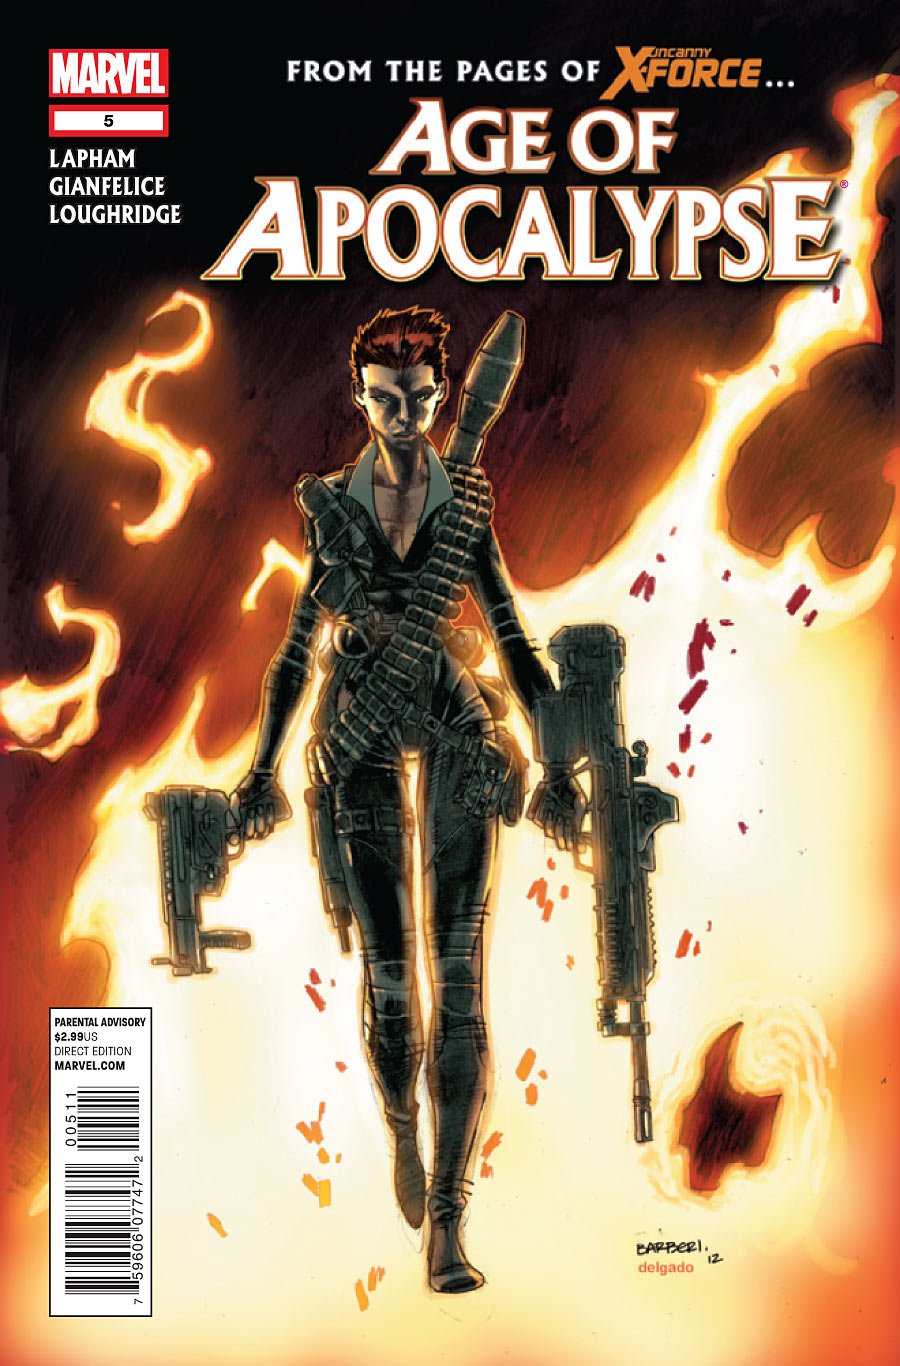 """Read Online Age of Apocalypse #5 """"Jean Grey Goes on Her First Mission with the X-terminated. Will She Survive It?"""" ebook"""